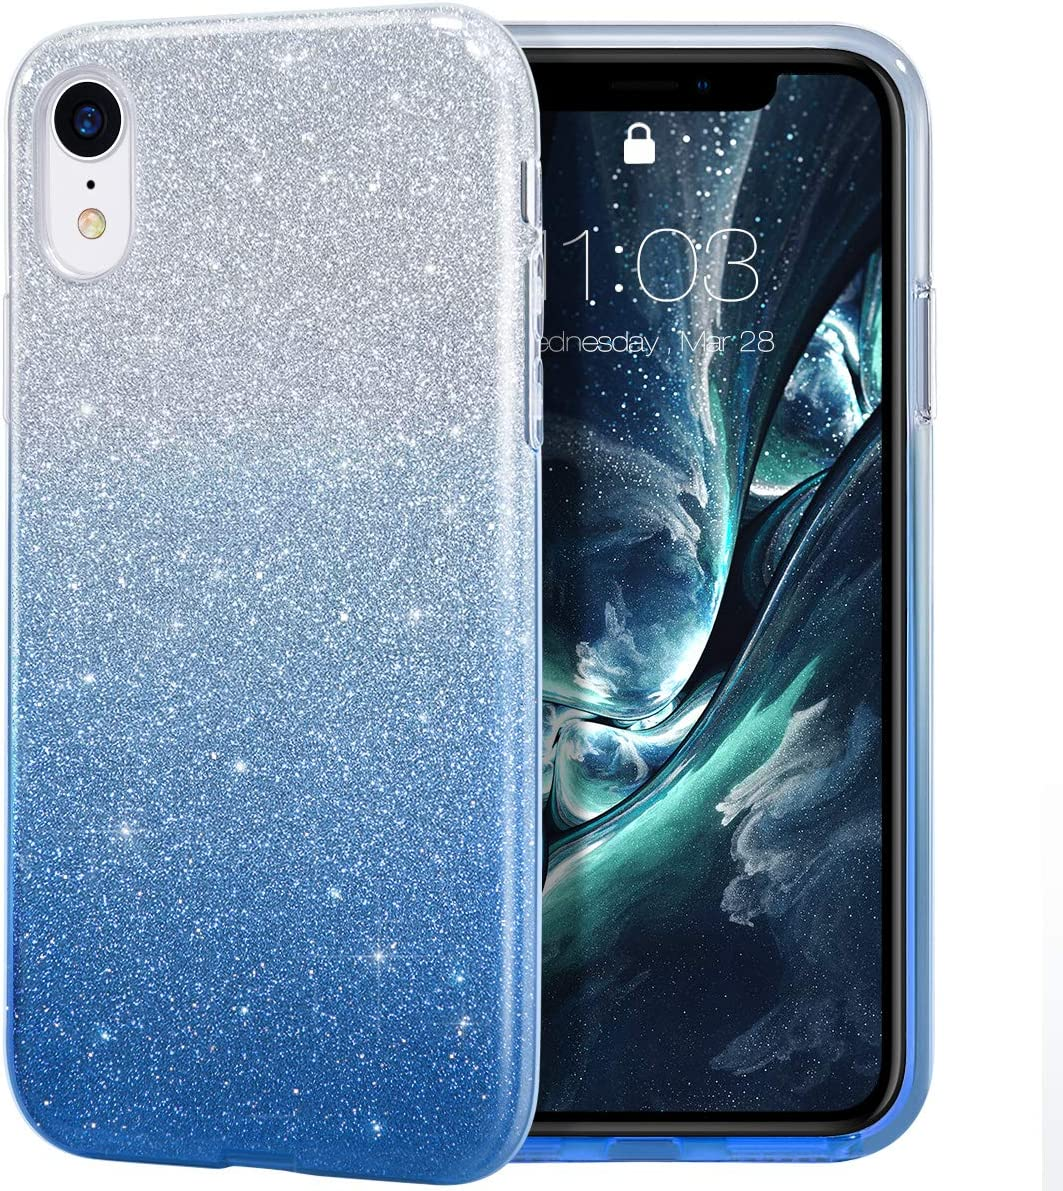 MILPROX Glitter case for iPhone XR 6.1